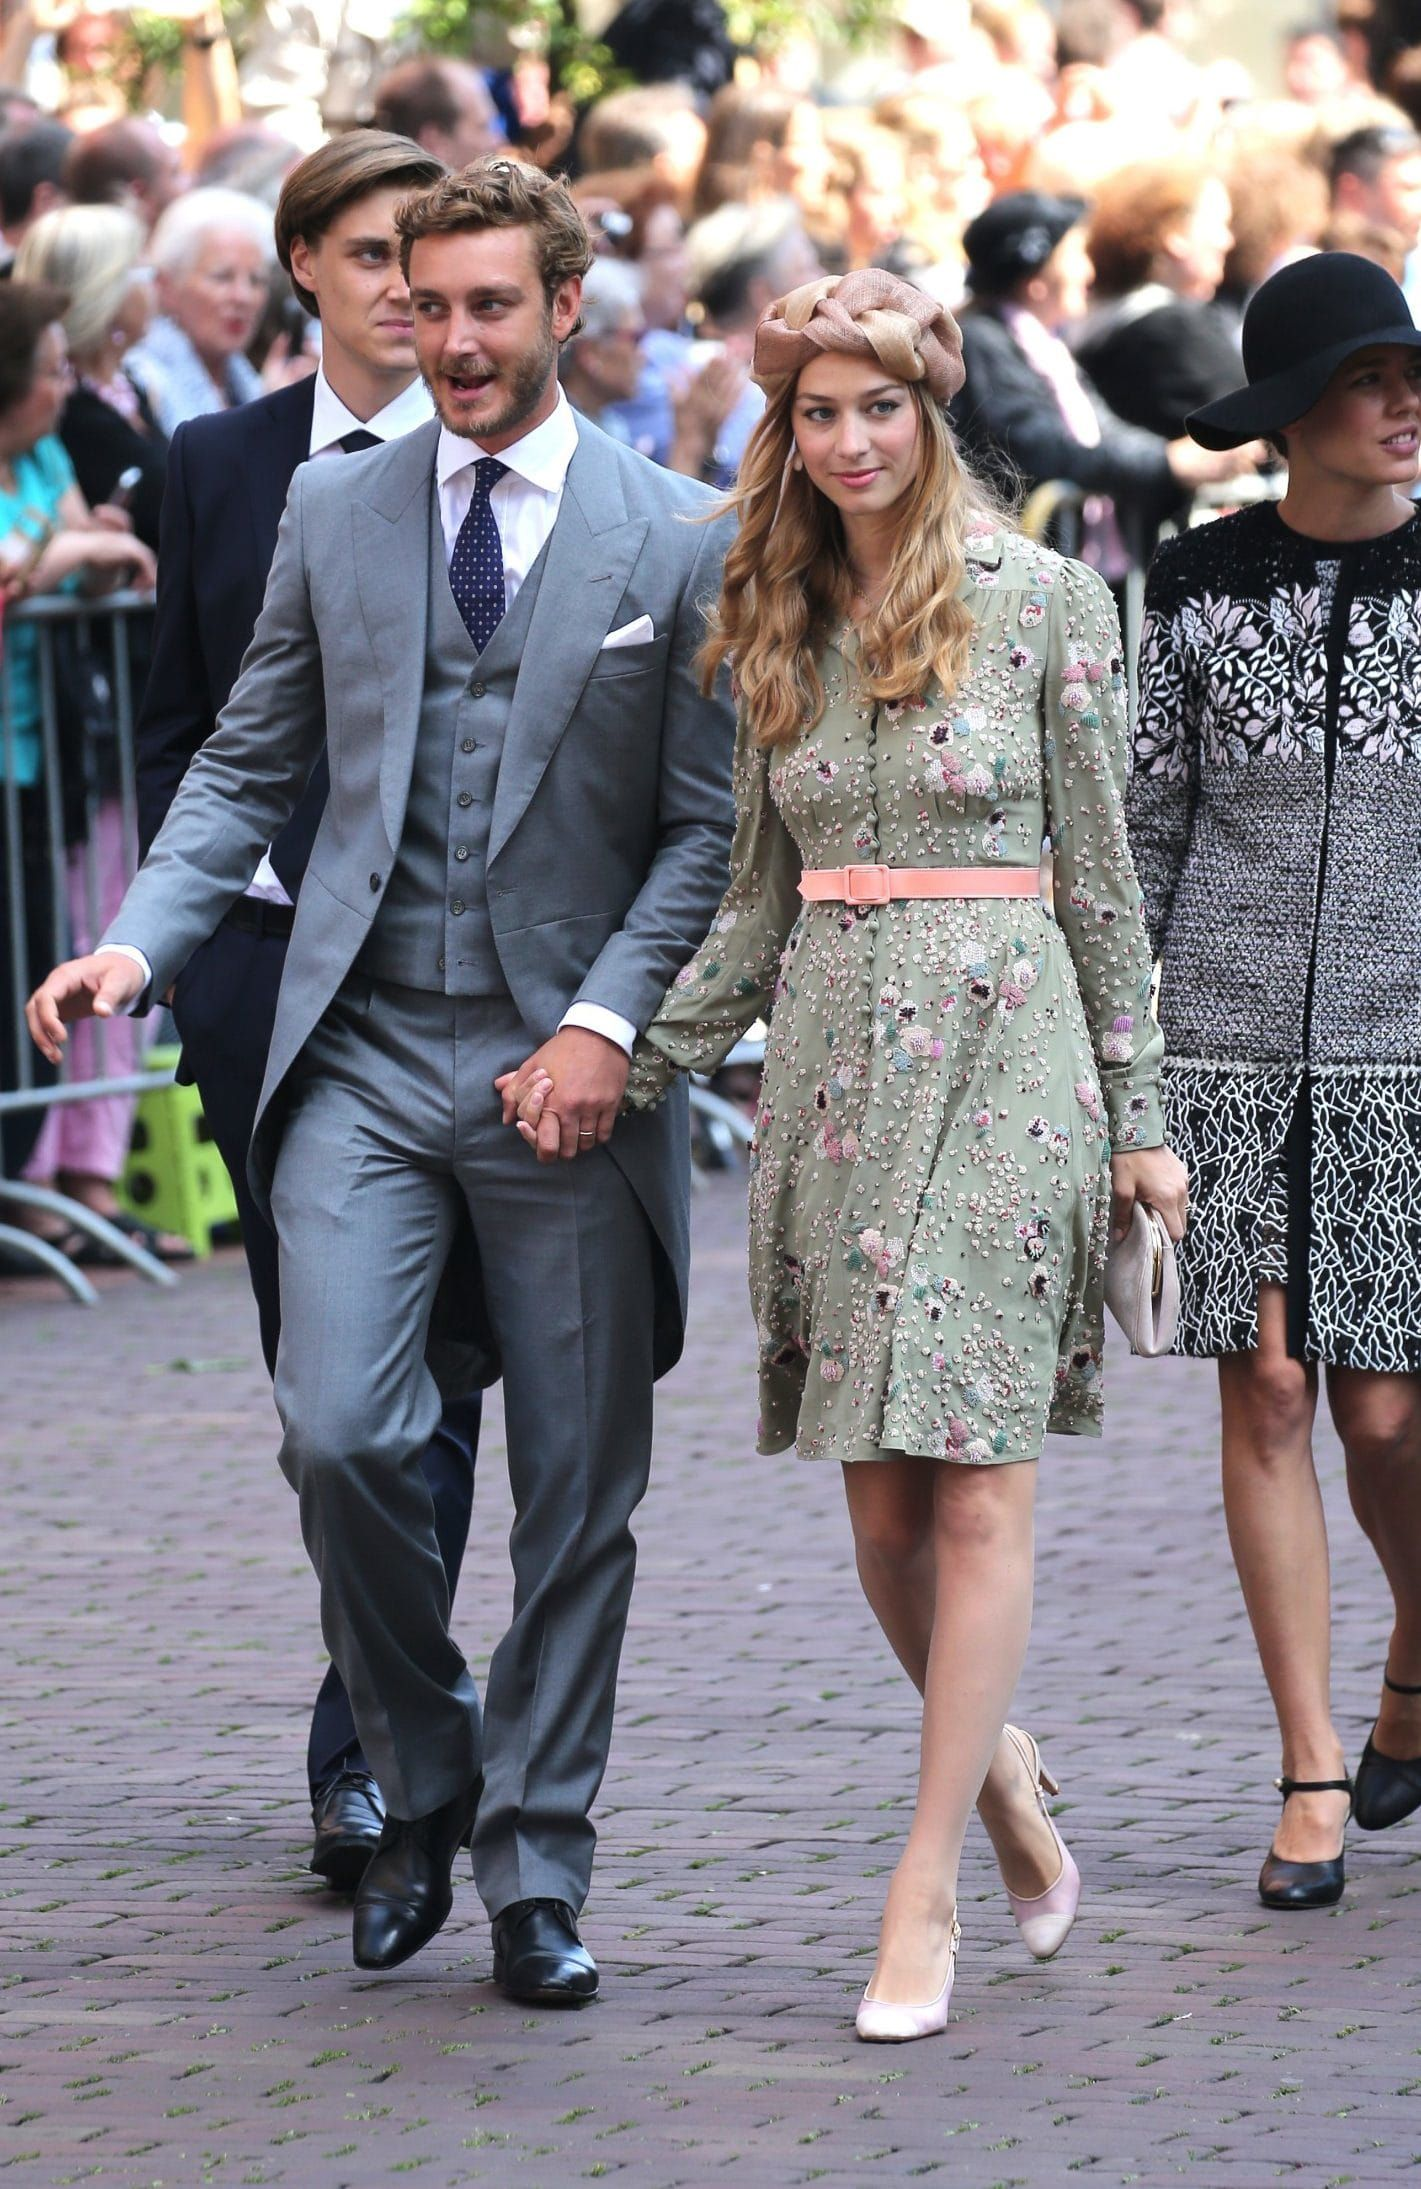 Why Beatrice Borromeo is the stylish, downtoearth royal